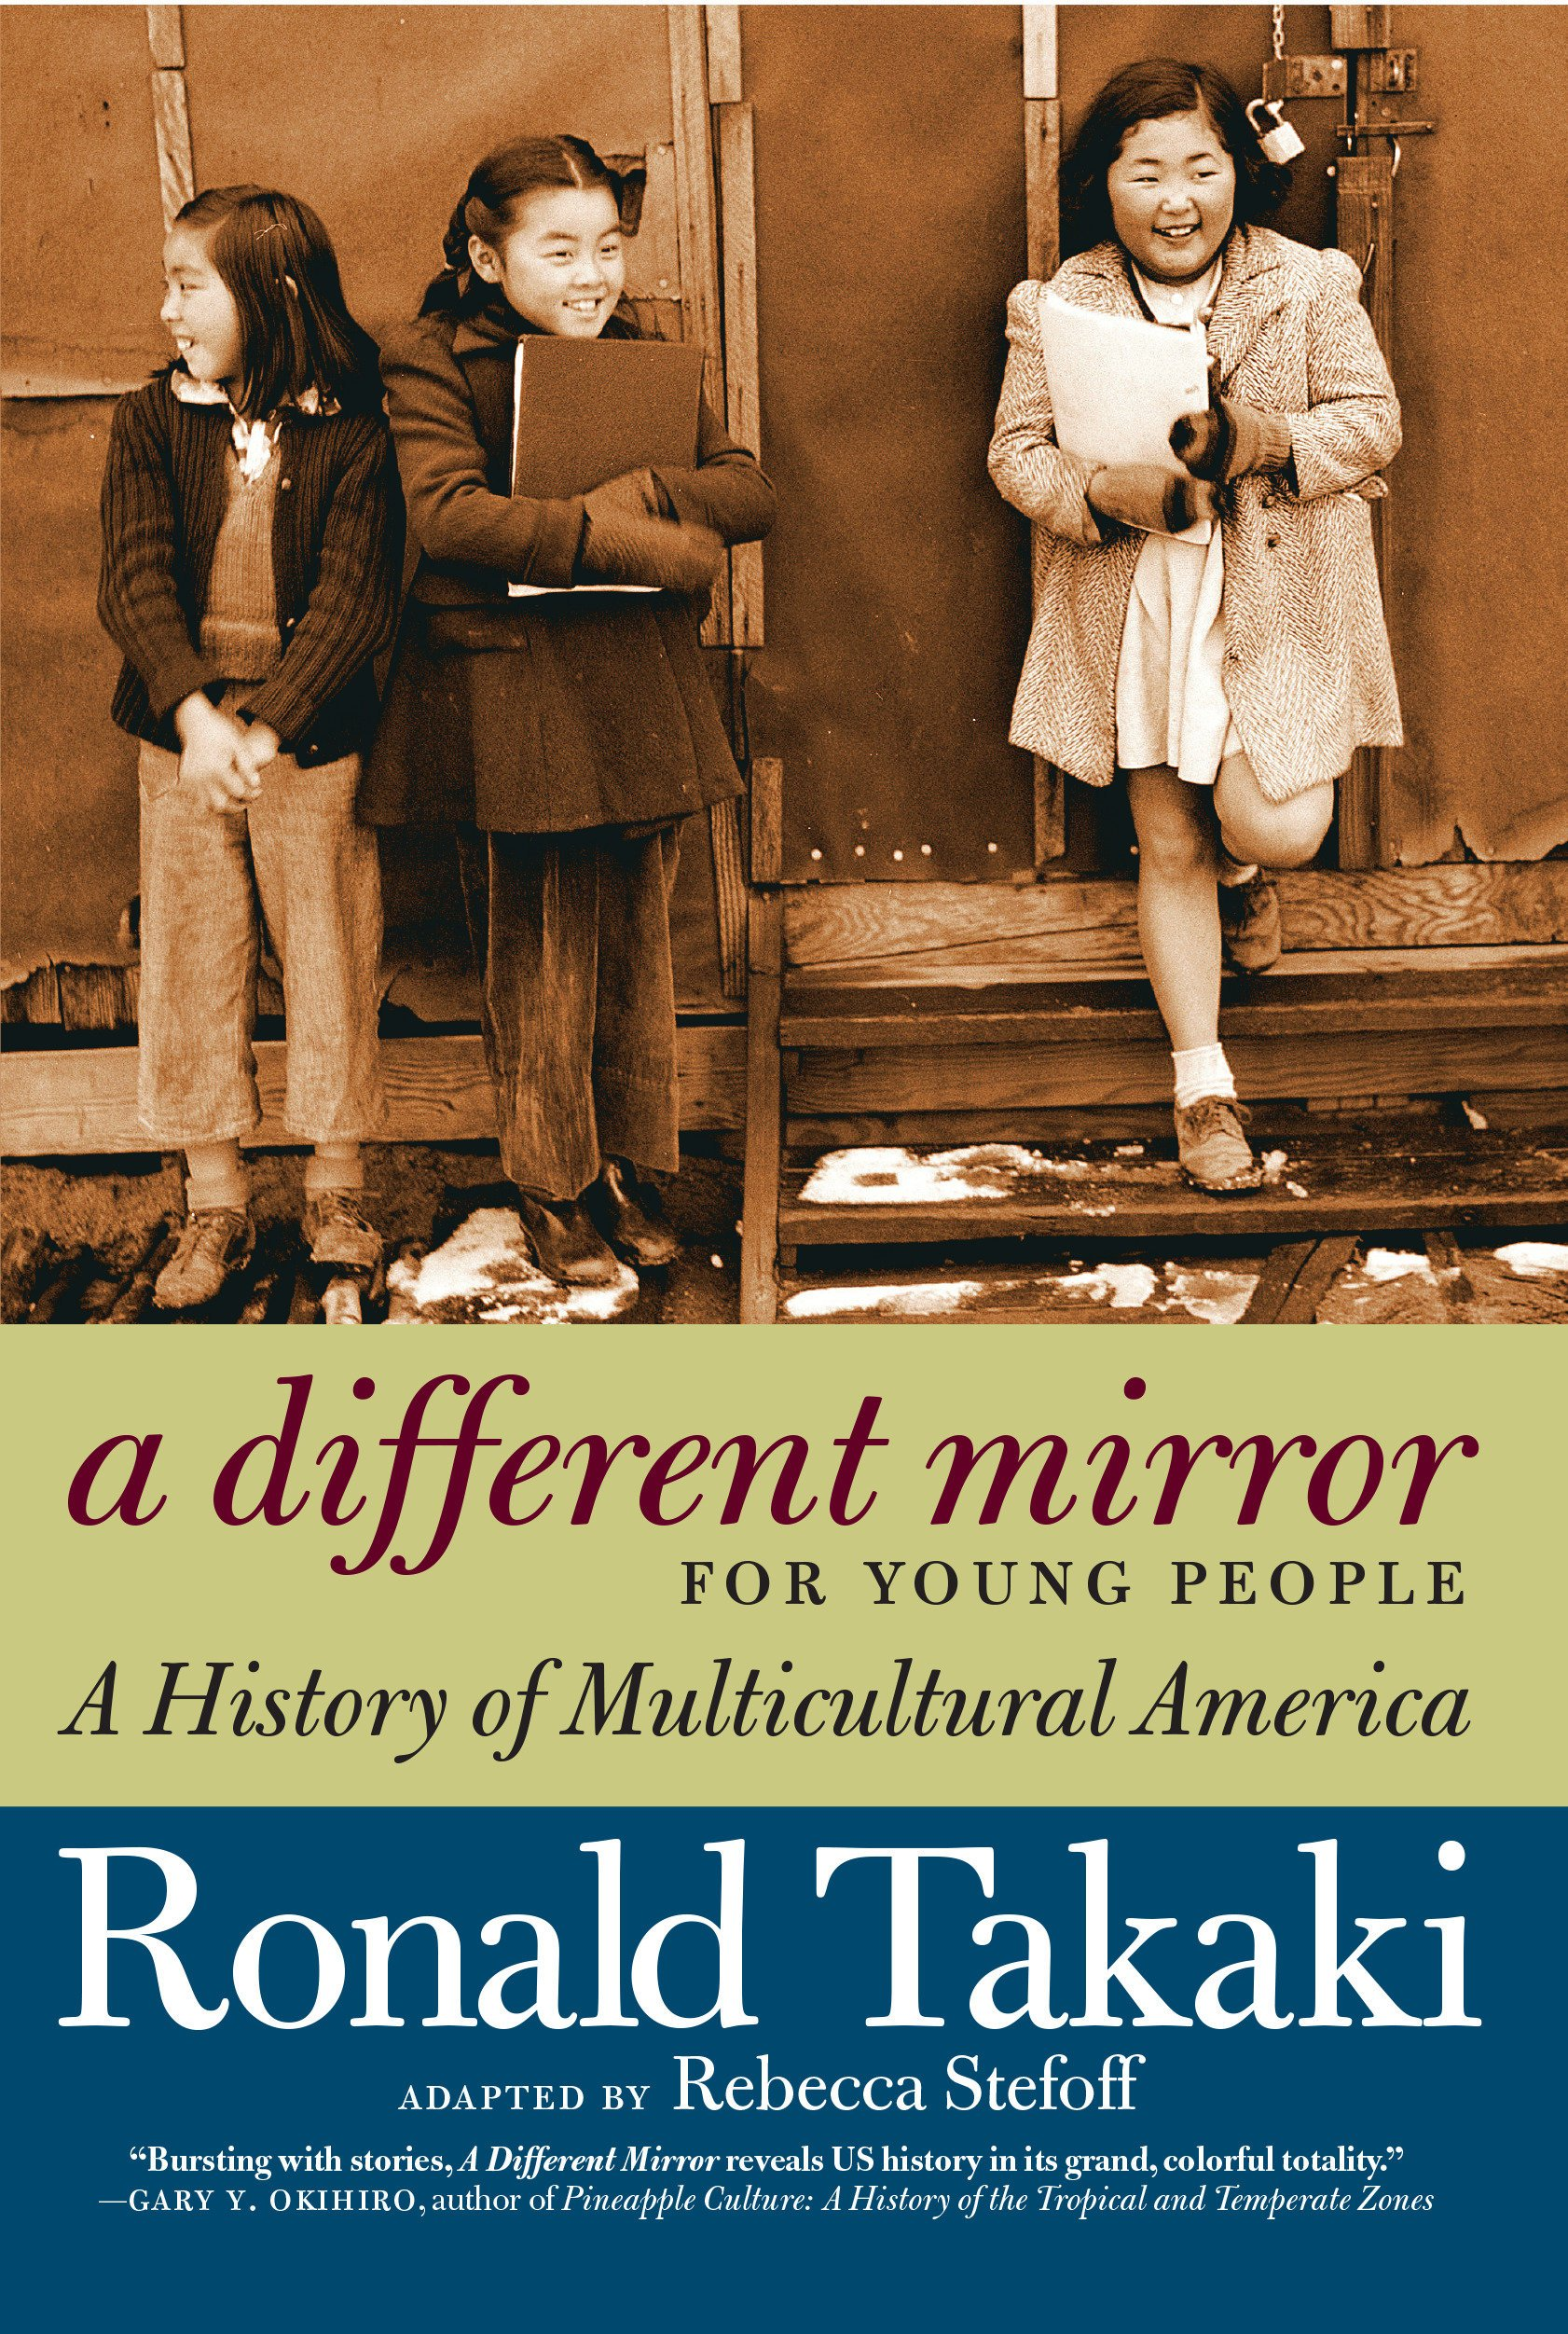 A Different Mirror for Young People: A History of Multicultural America  (For Young People Series): Rebecca Stefoff, Ronald Takaki: 9781609804169:  ...